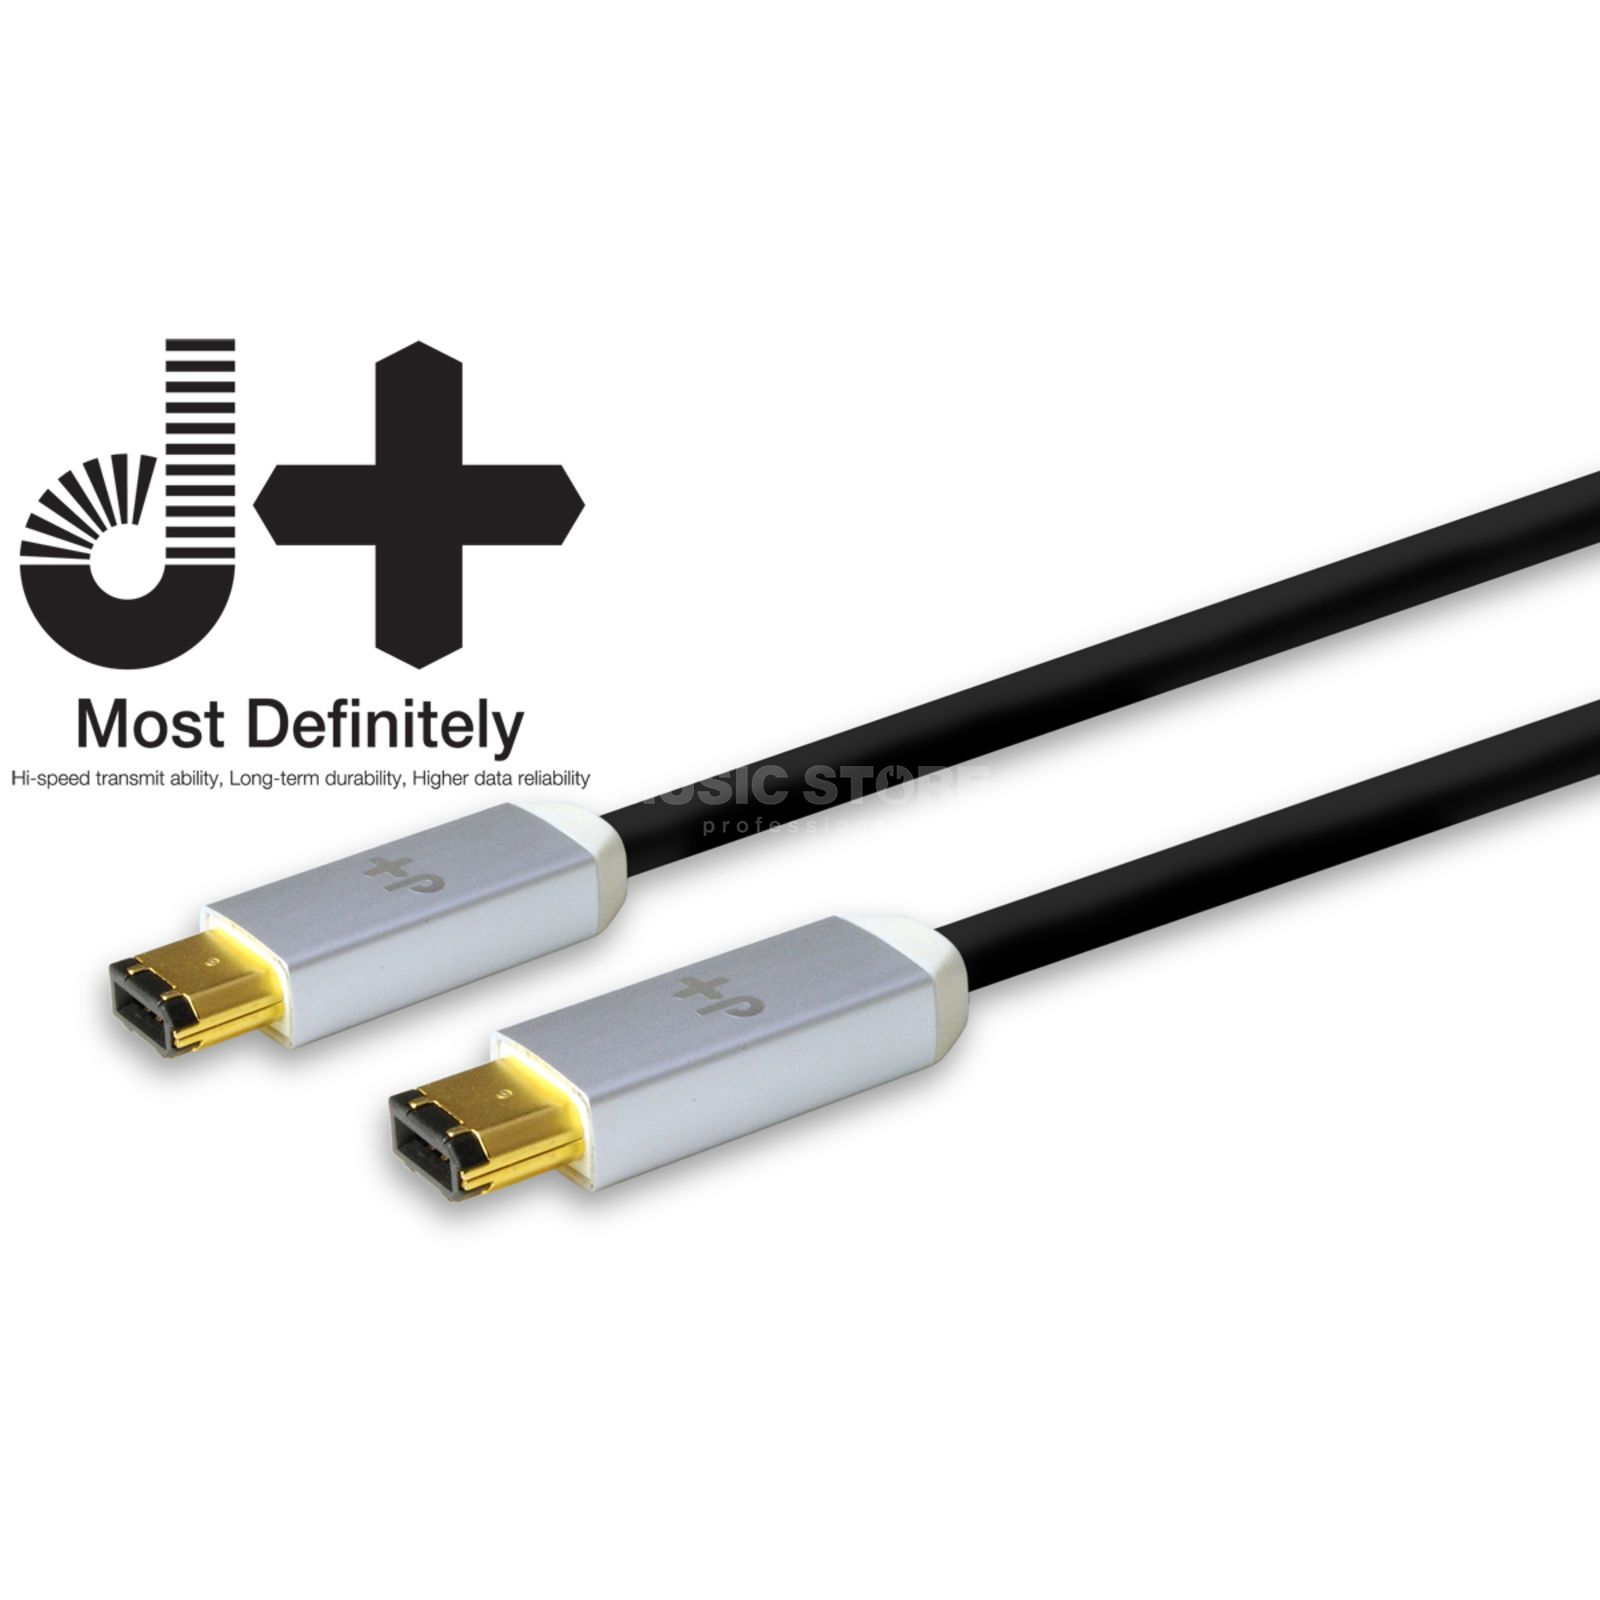 NEO by Oyaide d+ FireWire Kabel 6pin-6pin, (400-400), 2,0m Produktbild